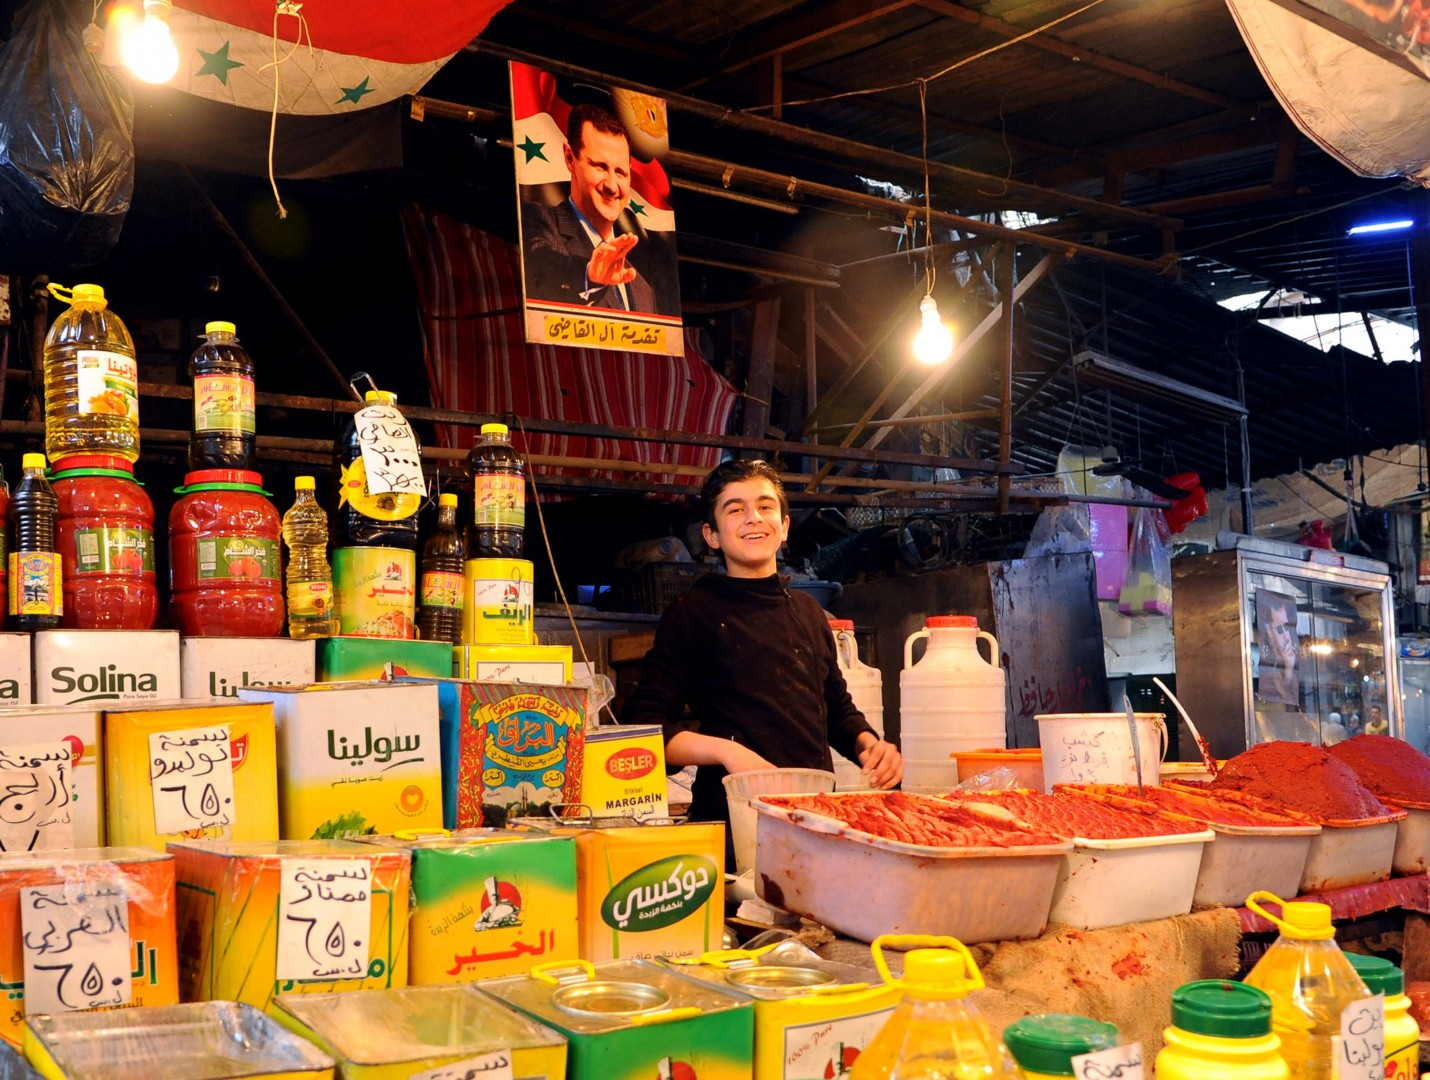 (160227) -- DAMASCUS, Feb. 27, 2016 (Xinhua) -- A Syrian vendor arranges his goods at their shop in Bab Srijeh marketplace in Damascus, capital of Syria, on Feb. 27, 2016. The capital has seen a relatively calm day on Saturday, as a Russian-US sponsored truce went into effect at midnight Friday. (Xinhua/Ammar)